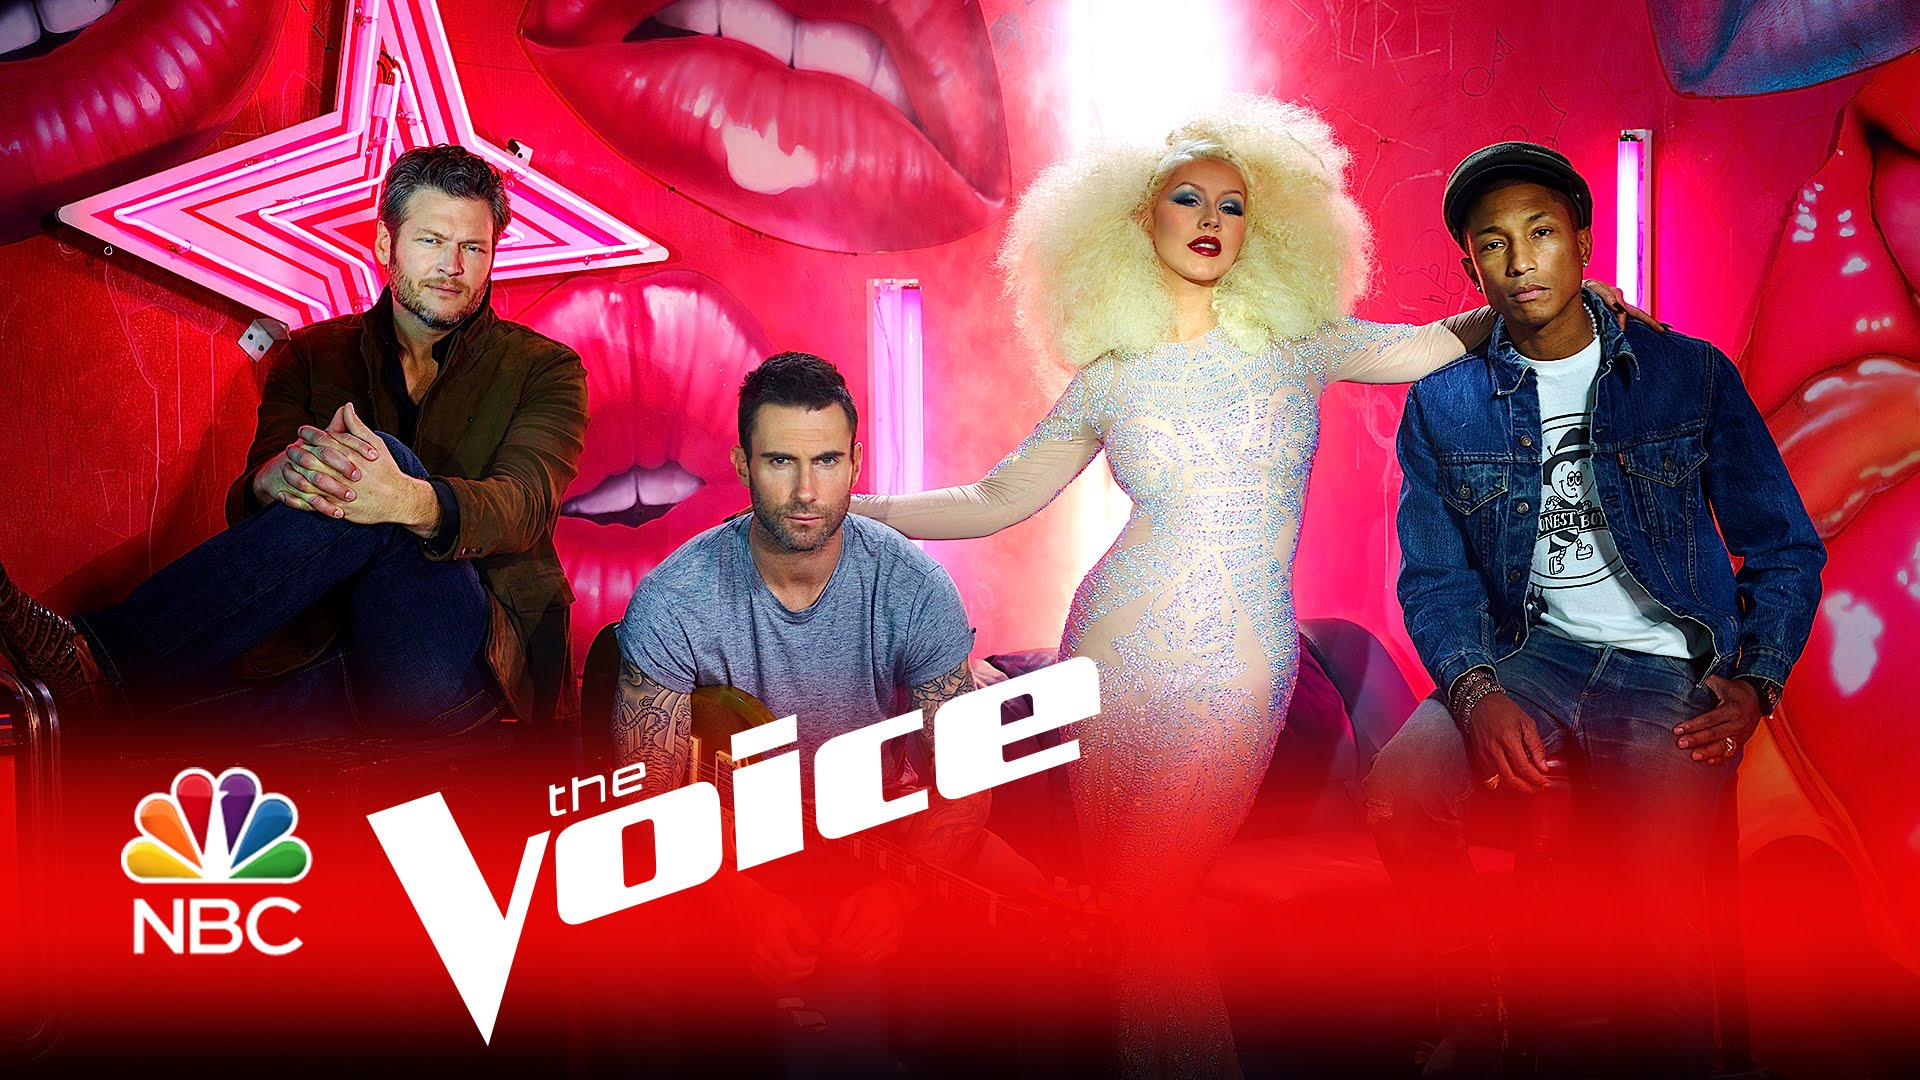 the voice - photo #27